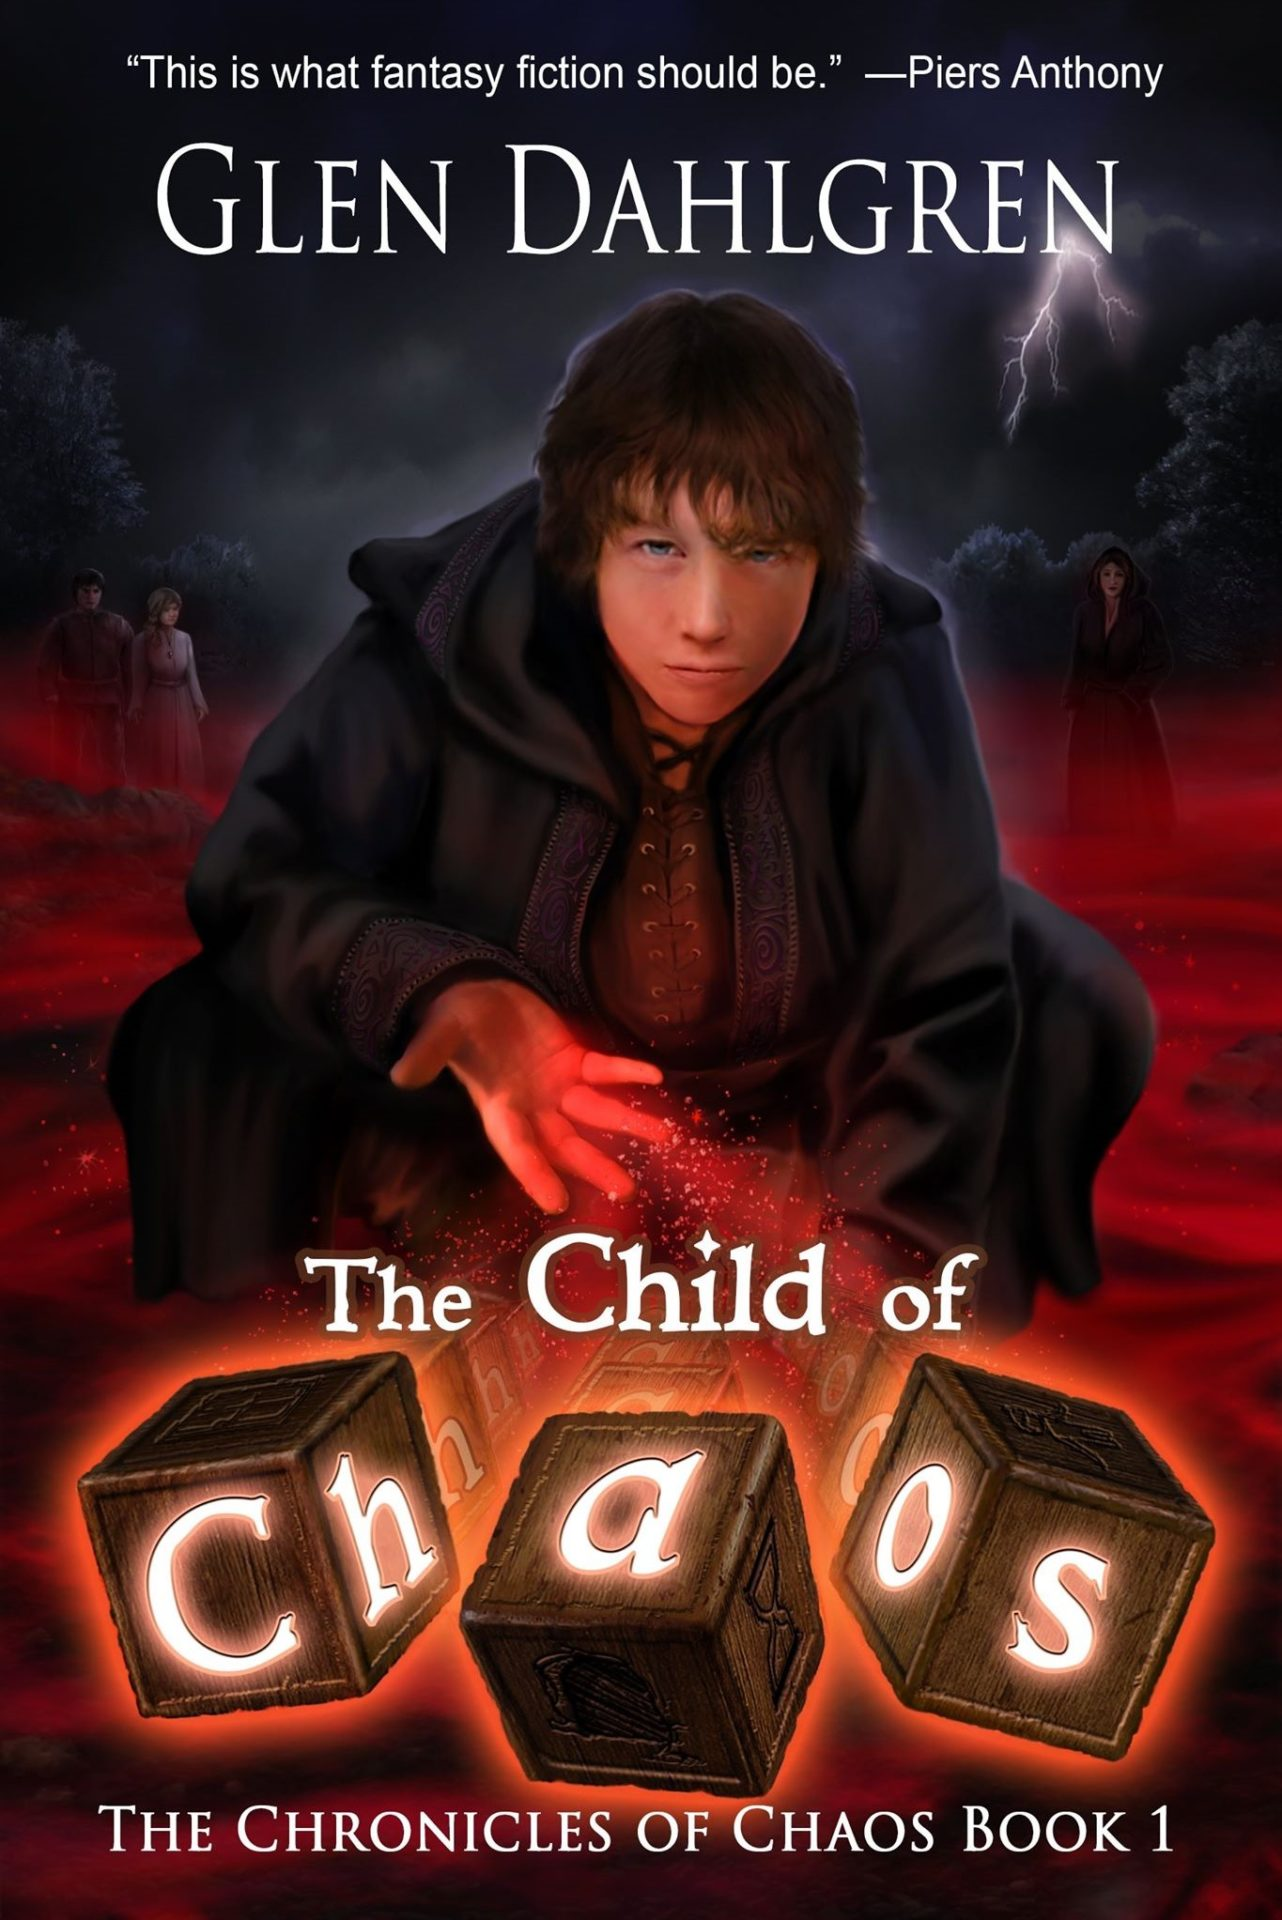 The Child of Chaos (The Chronicles of Chaos Libro 1) – Glen Dahlgren